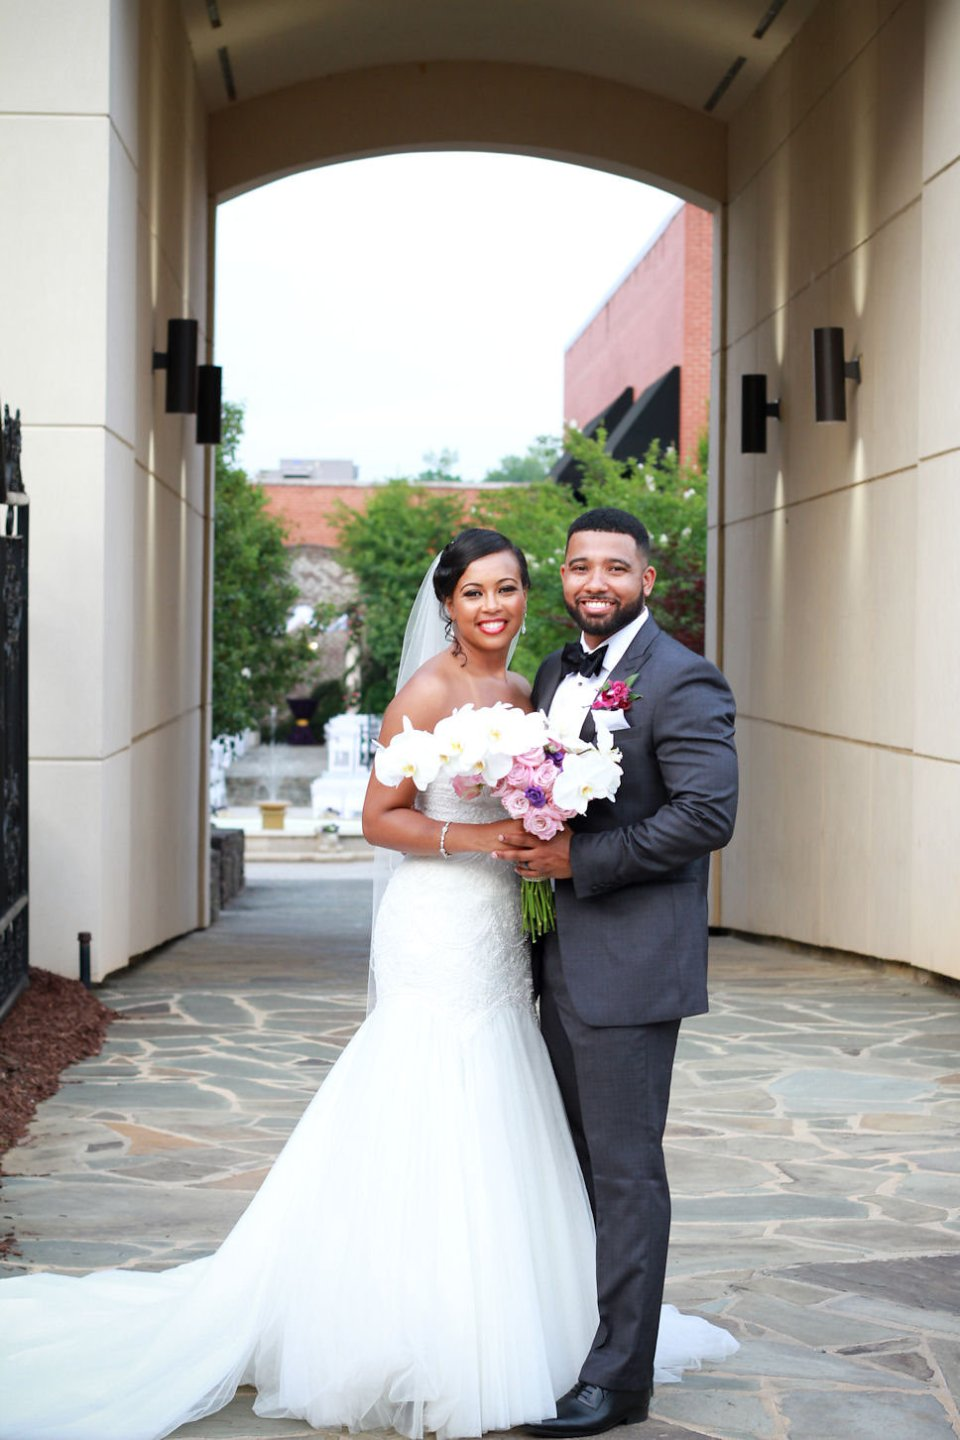 711_resize-960x1440 Southern Inspired, Greensboro, NC Wedding